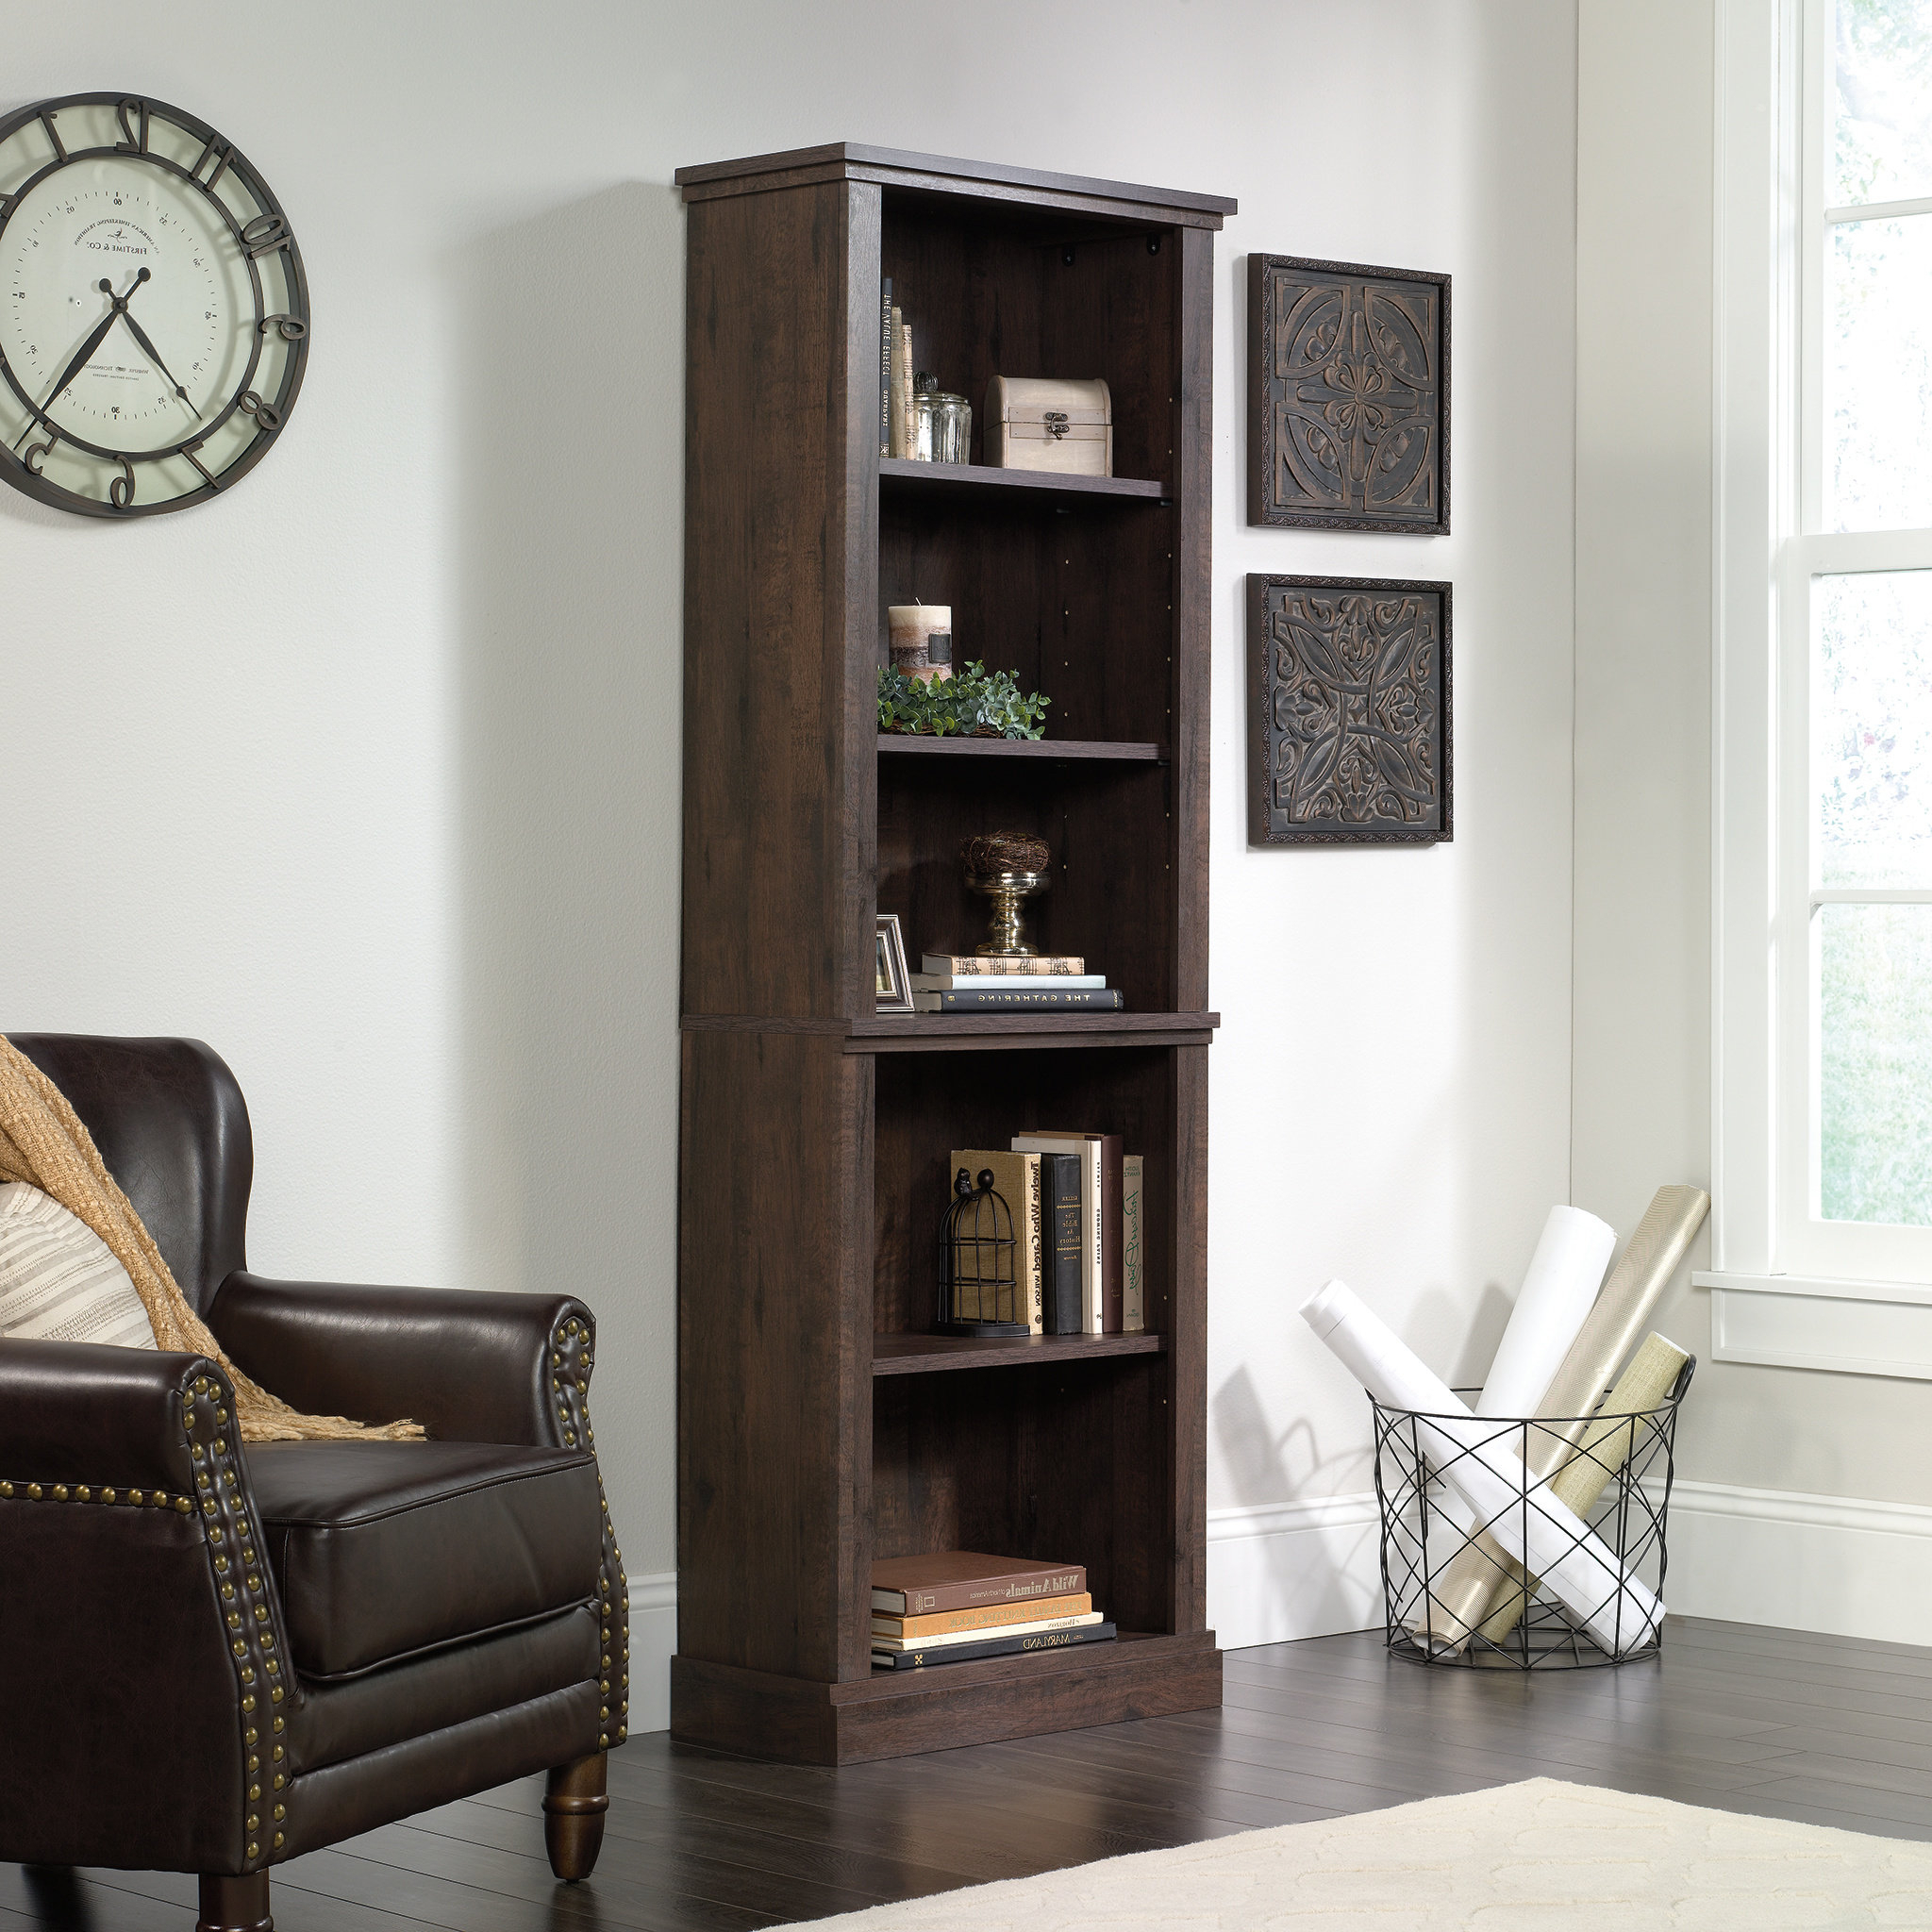 Arvilla Standard Bookcase Intended For Current Orford Standard Bookcases (View 14 of 20)